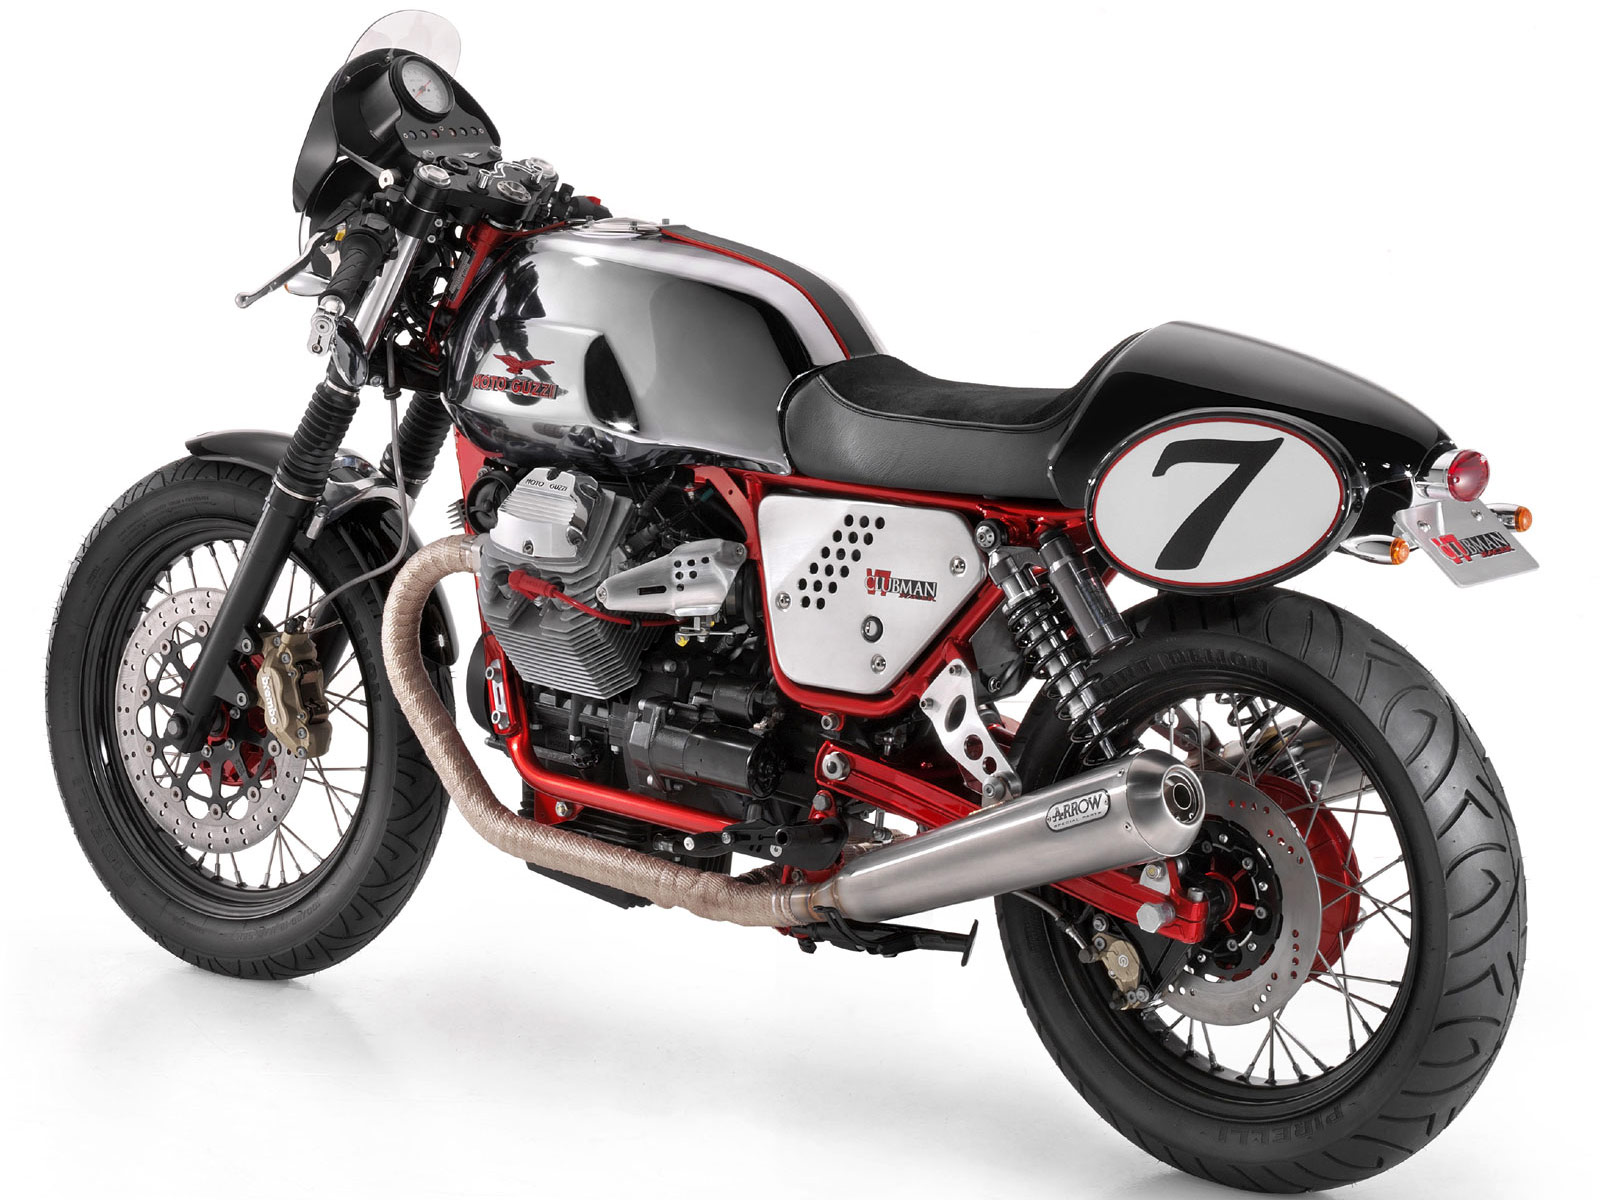 MOTO GUZZI V7 Clubman Racer (2010) Wallpapers